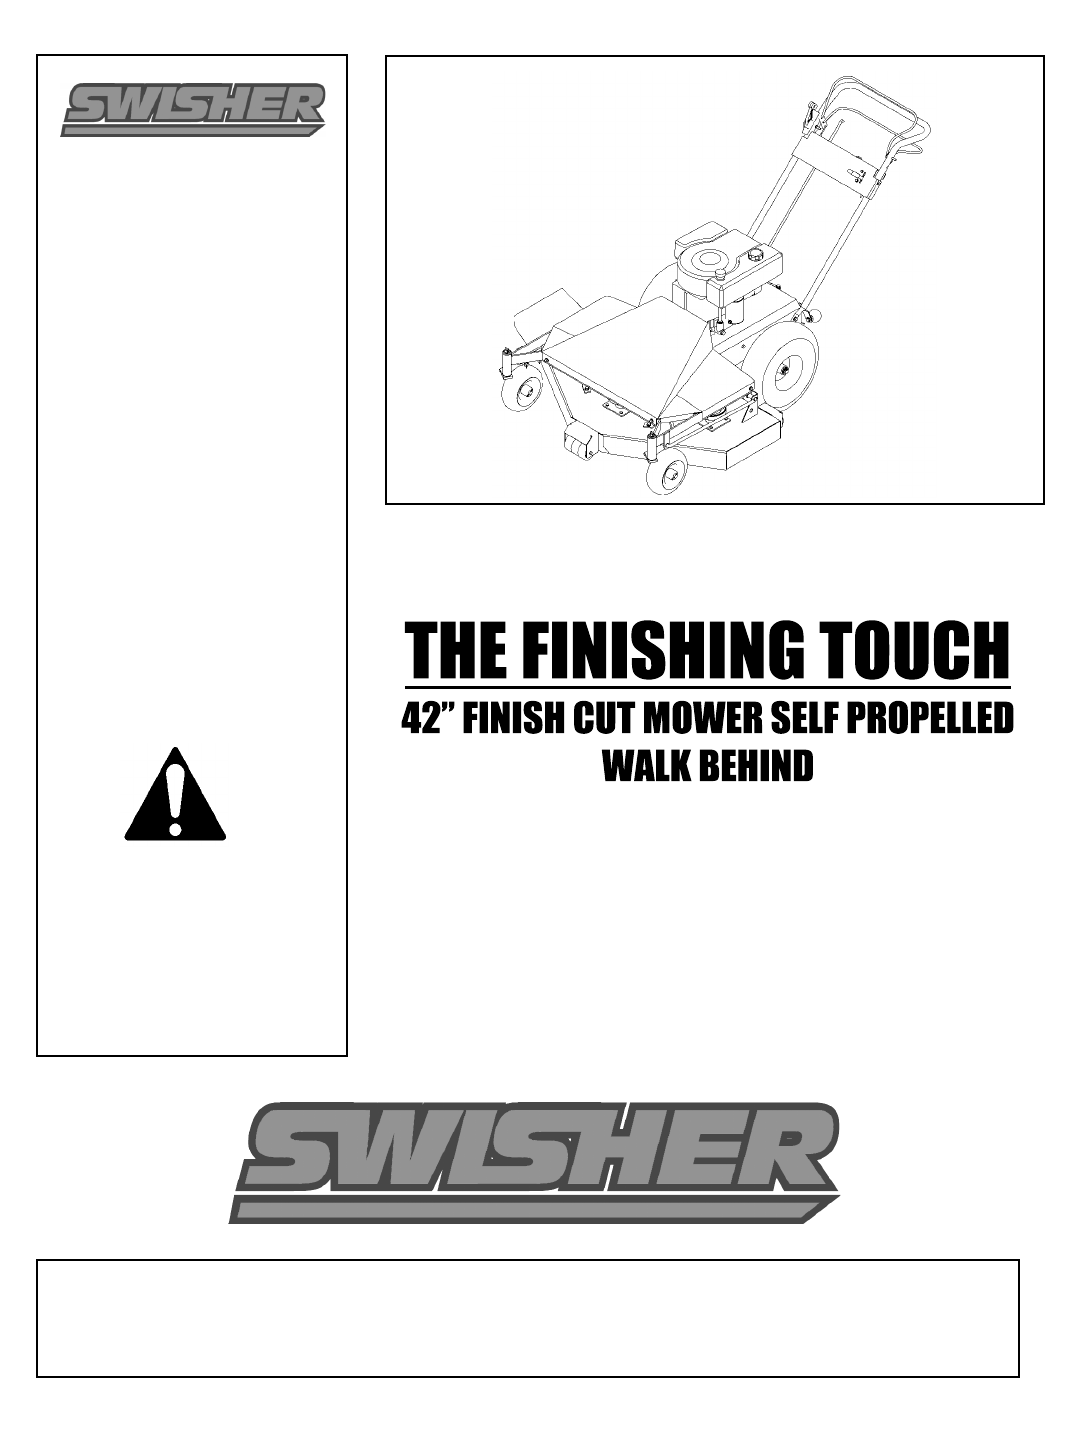 swisher lawn mower wb80042f user guide manualsonline com swisher trail mower parts swisher trail mower parts diagram